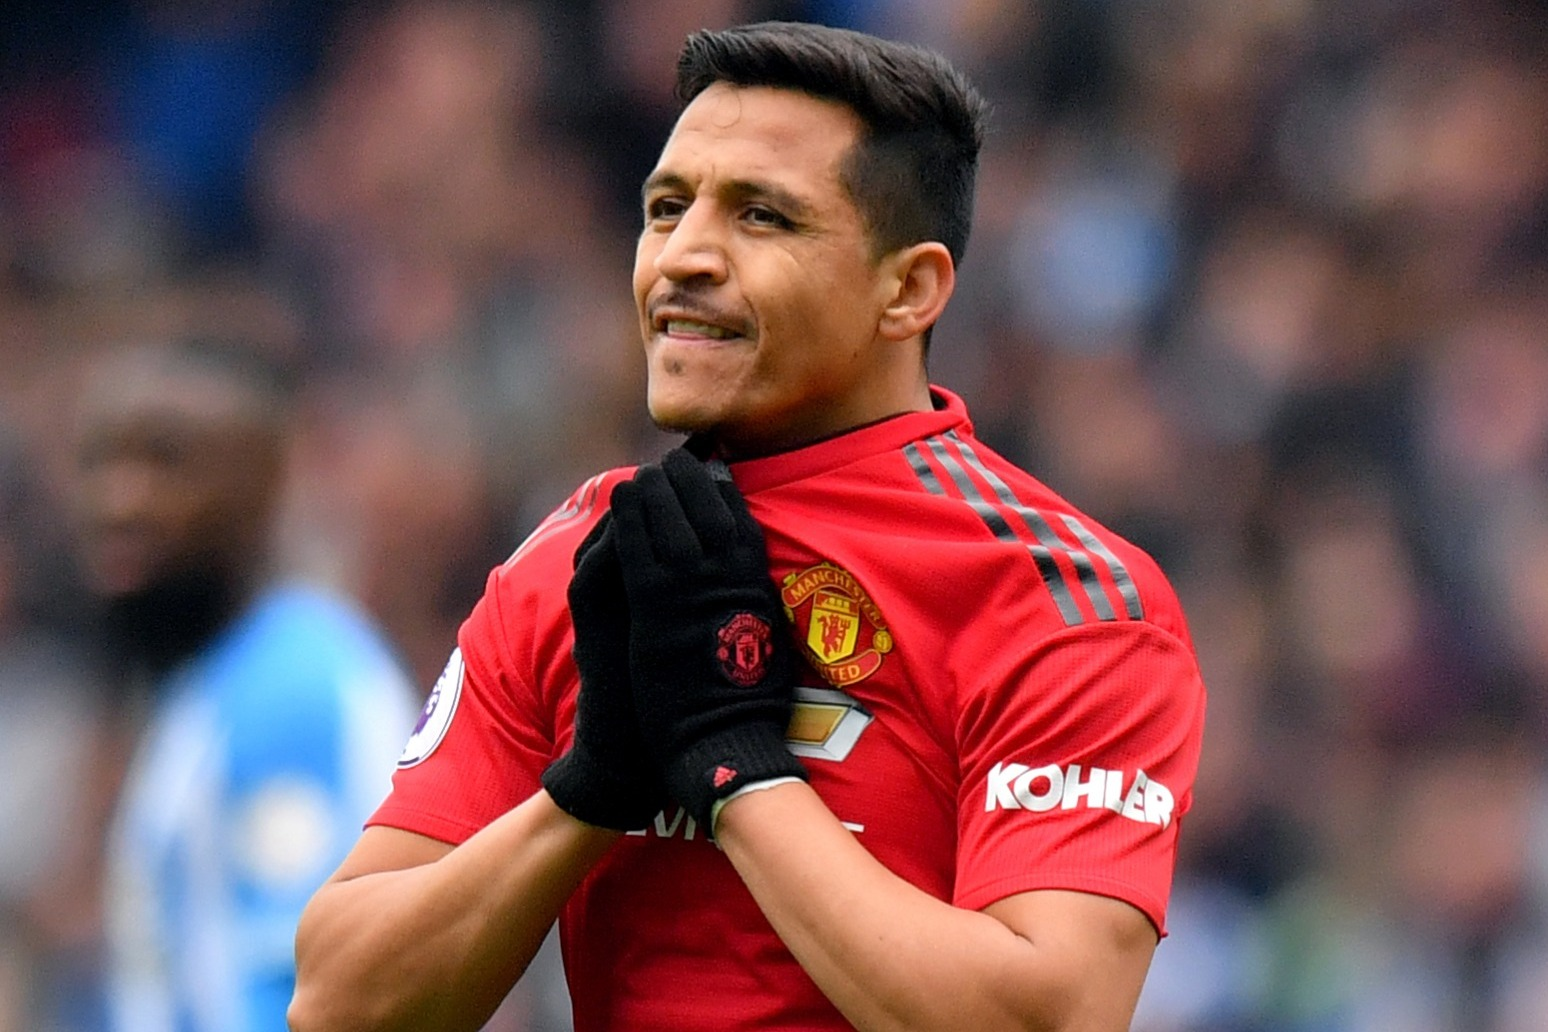 Alexis Sanchez exit agreed but Ole Gunnar Solskjaer tight-lipped on Jadon Sancho